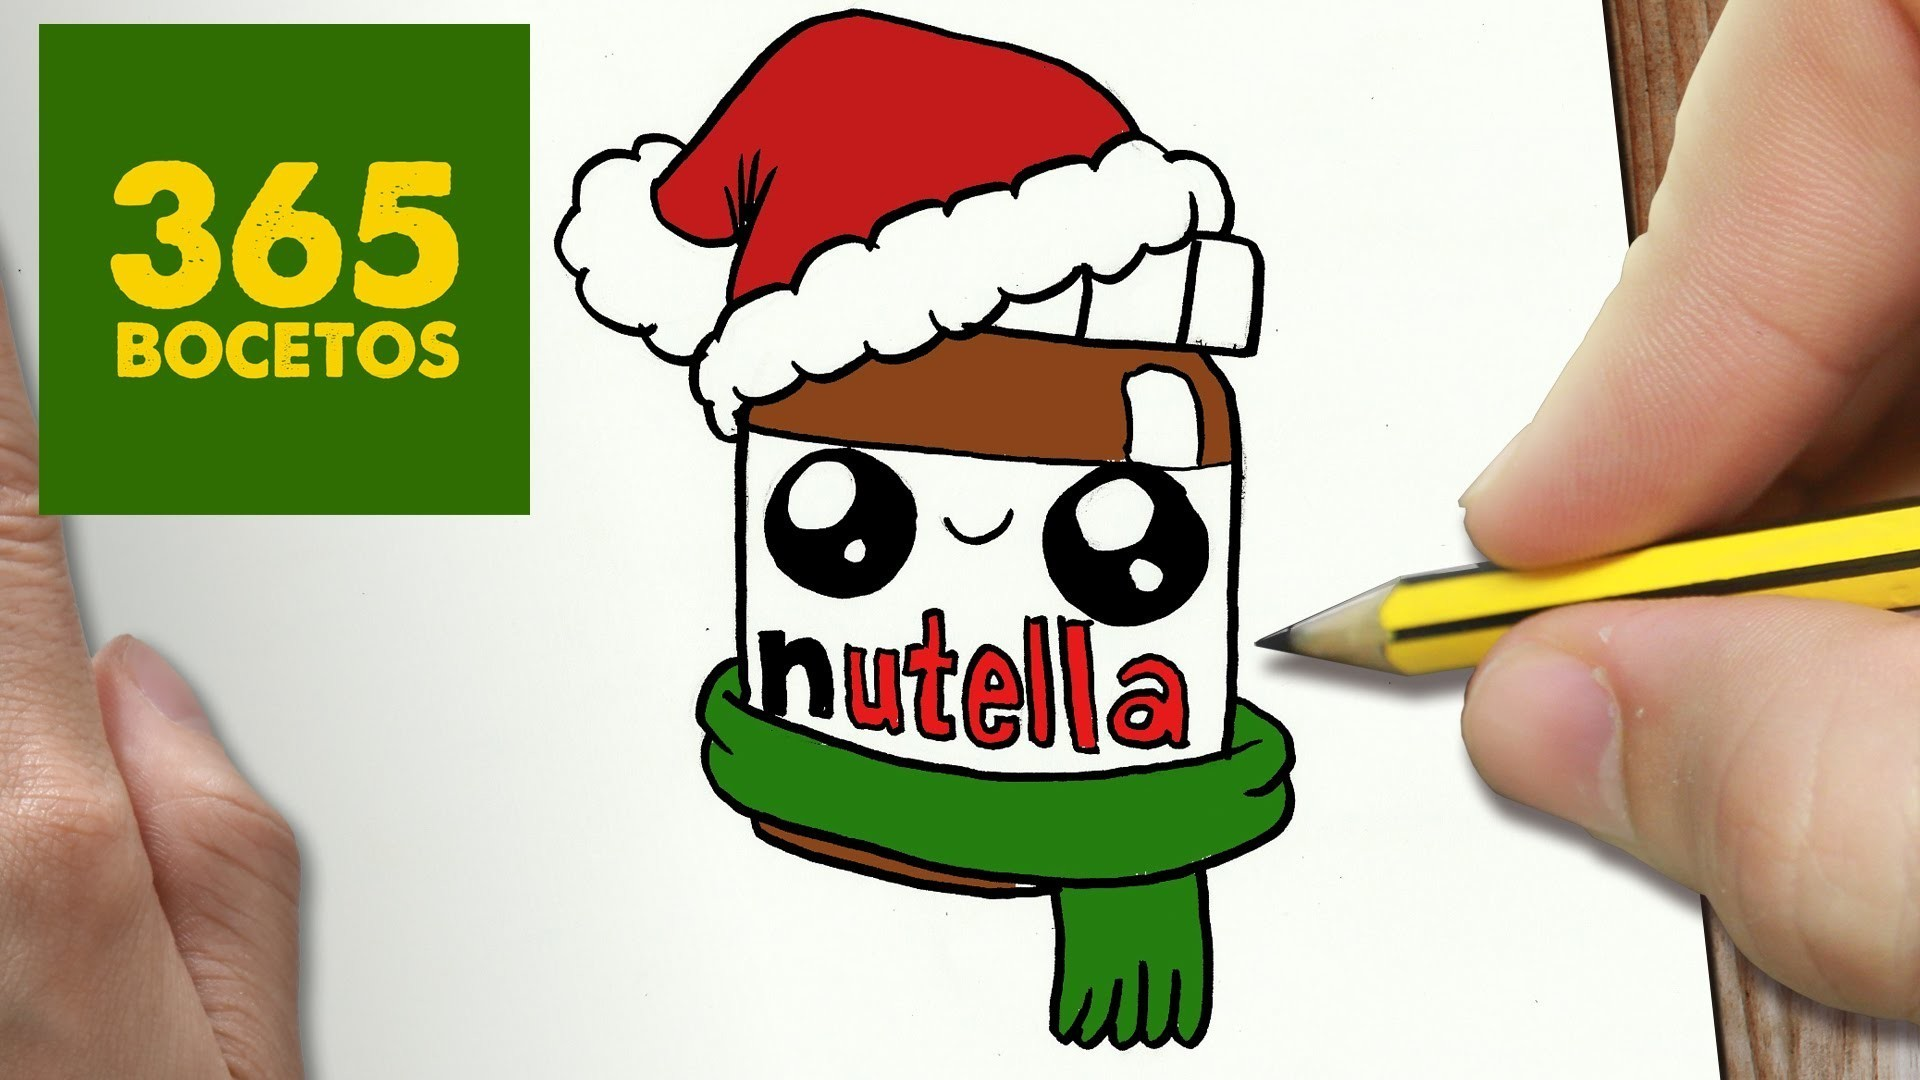 Res: 1920x1080, Kawaii Food wallpapers Cute backgrounds images screenshot 8 Source ·  Nutella Wallpapers